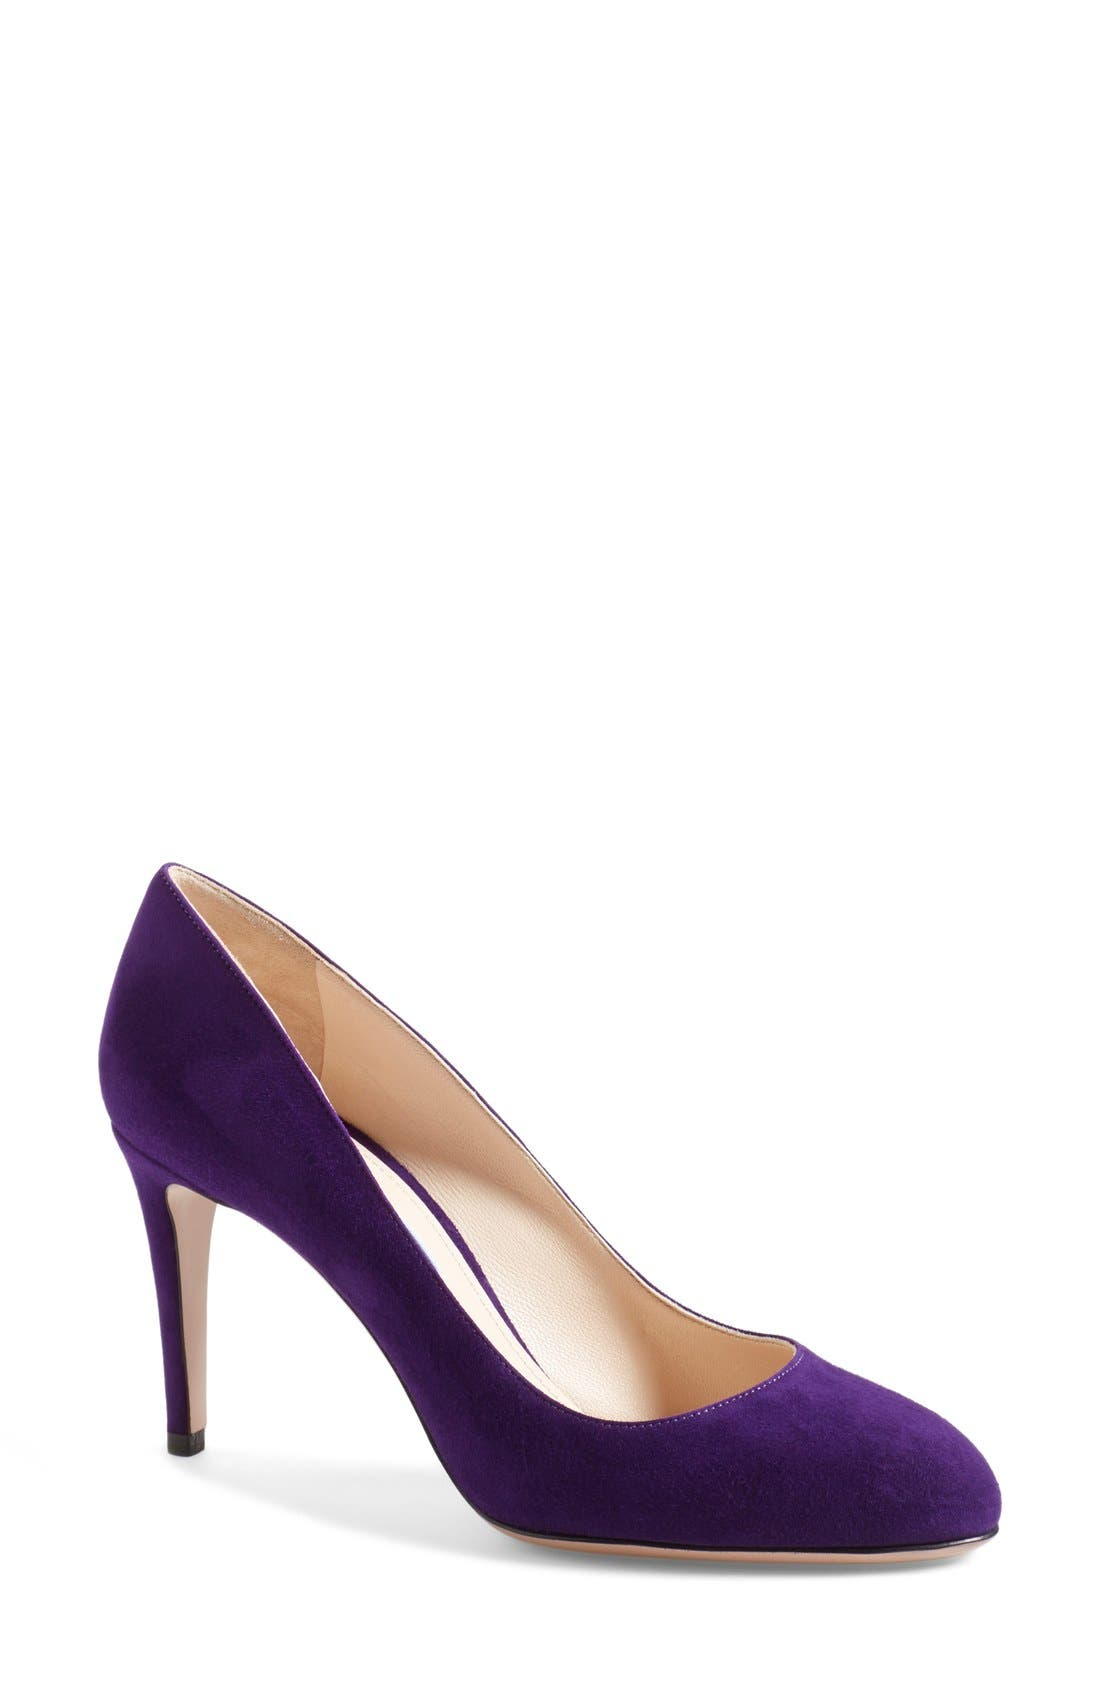 Alternate Image 1 Selected - Prada Almond Toe Pump (Women)